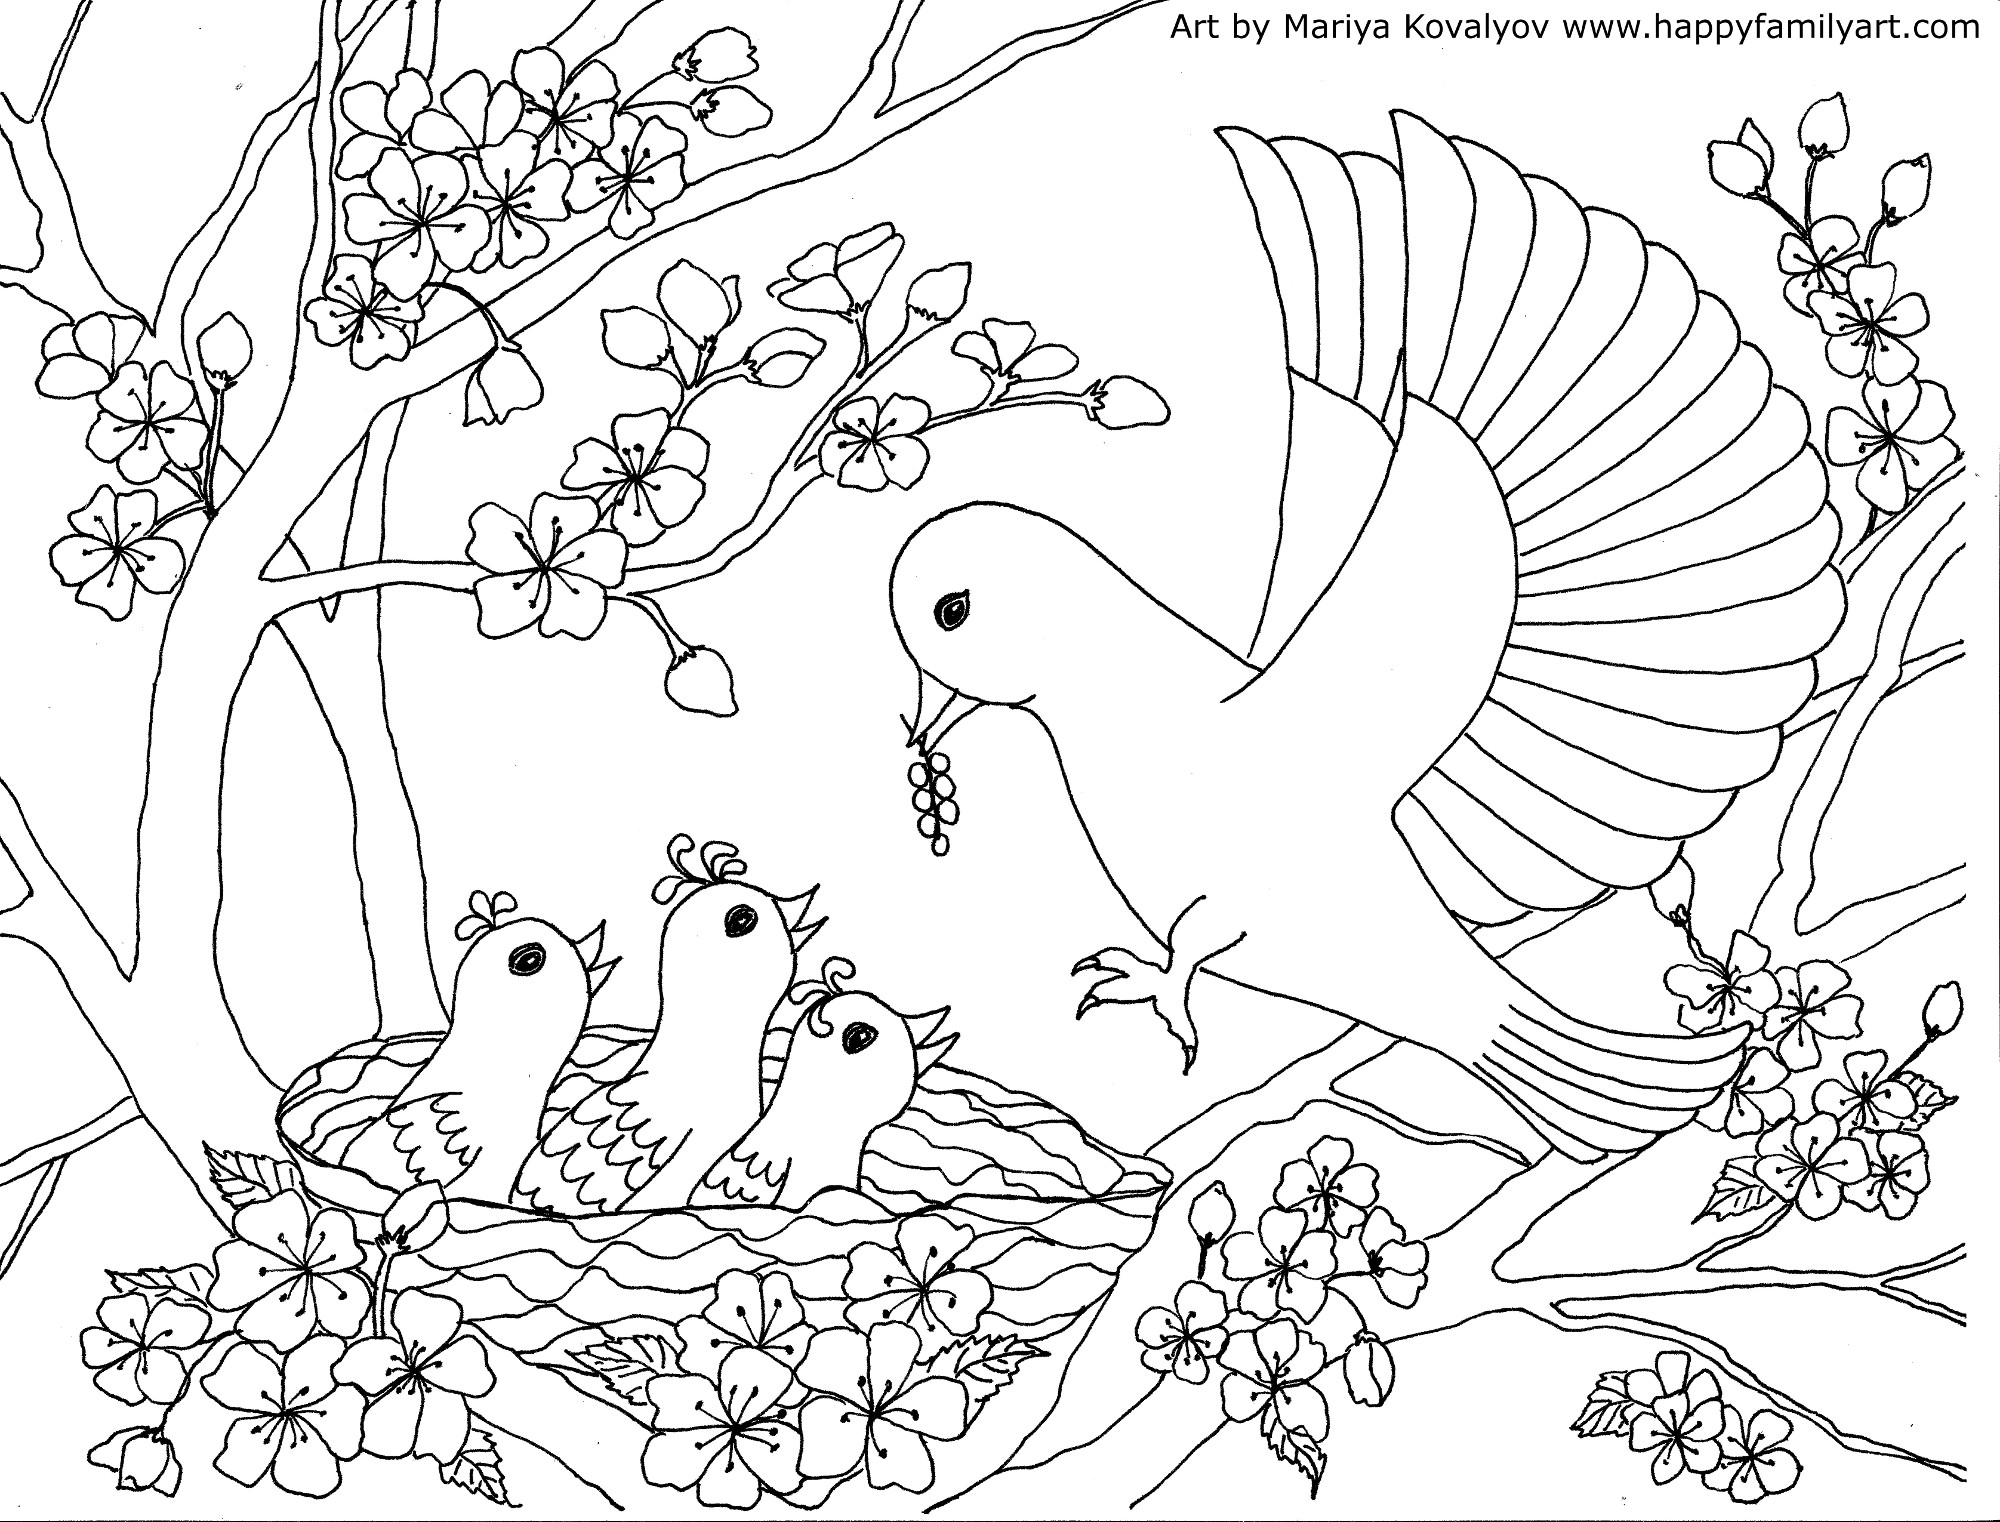 bird colouring pictures free printable angry bird coloring pages for kids bird pictures colouring